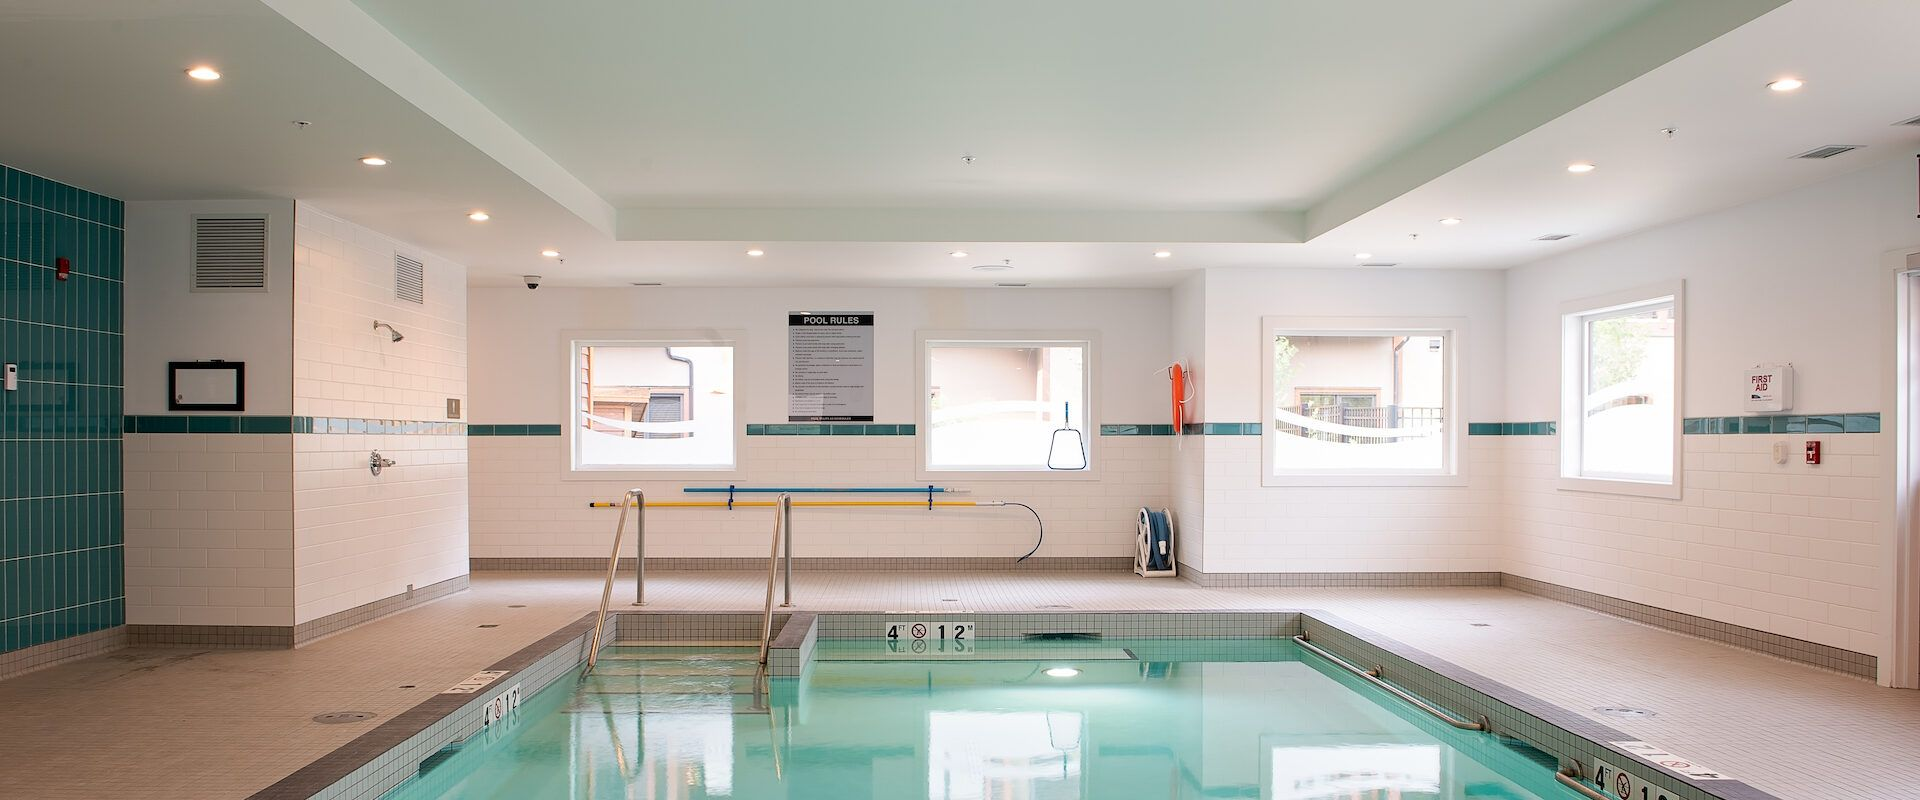 A bright blue indoor pool with bright lighting, white and turquoise tiles and sunlit windows.